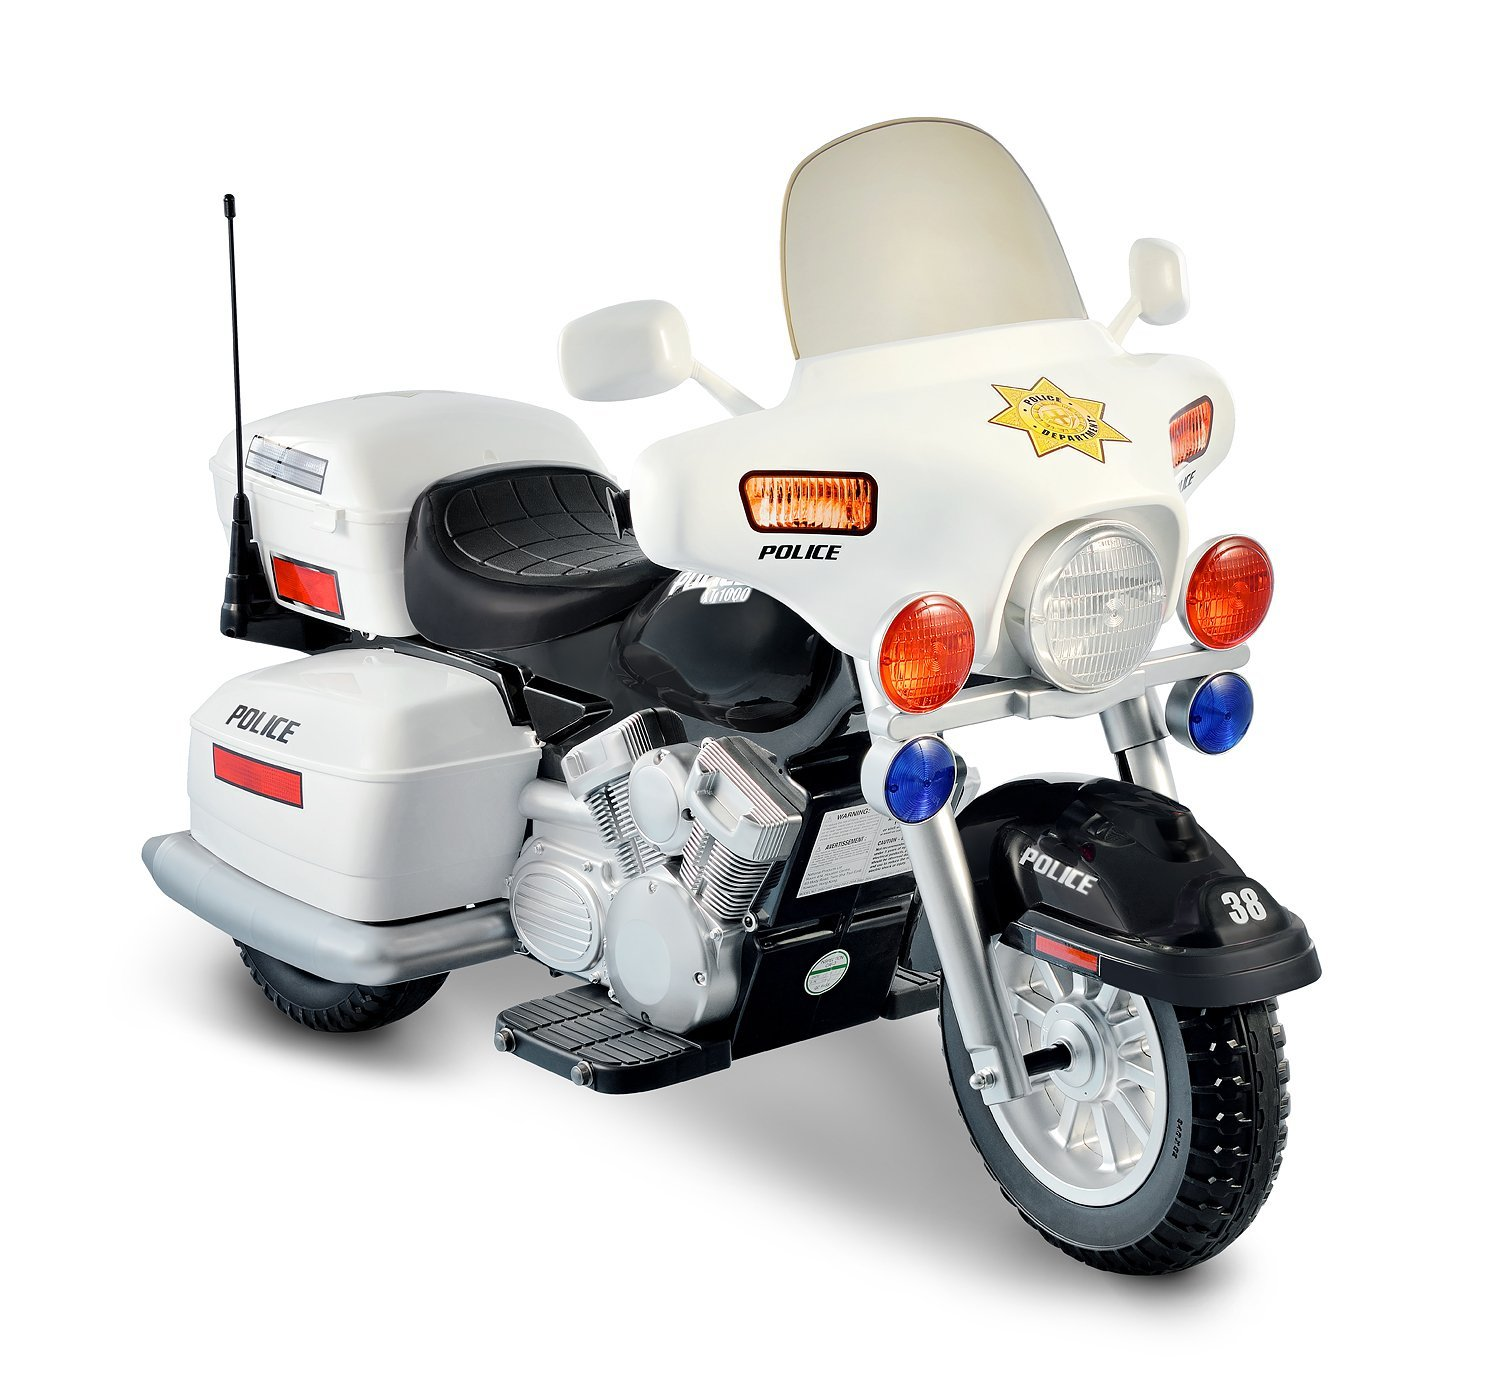 Amazon.com: 12V Police Motorcycle: Toys & Games